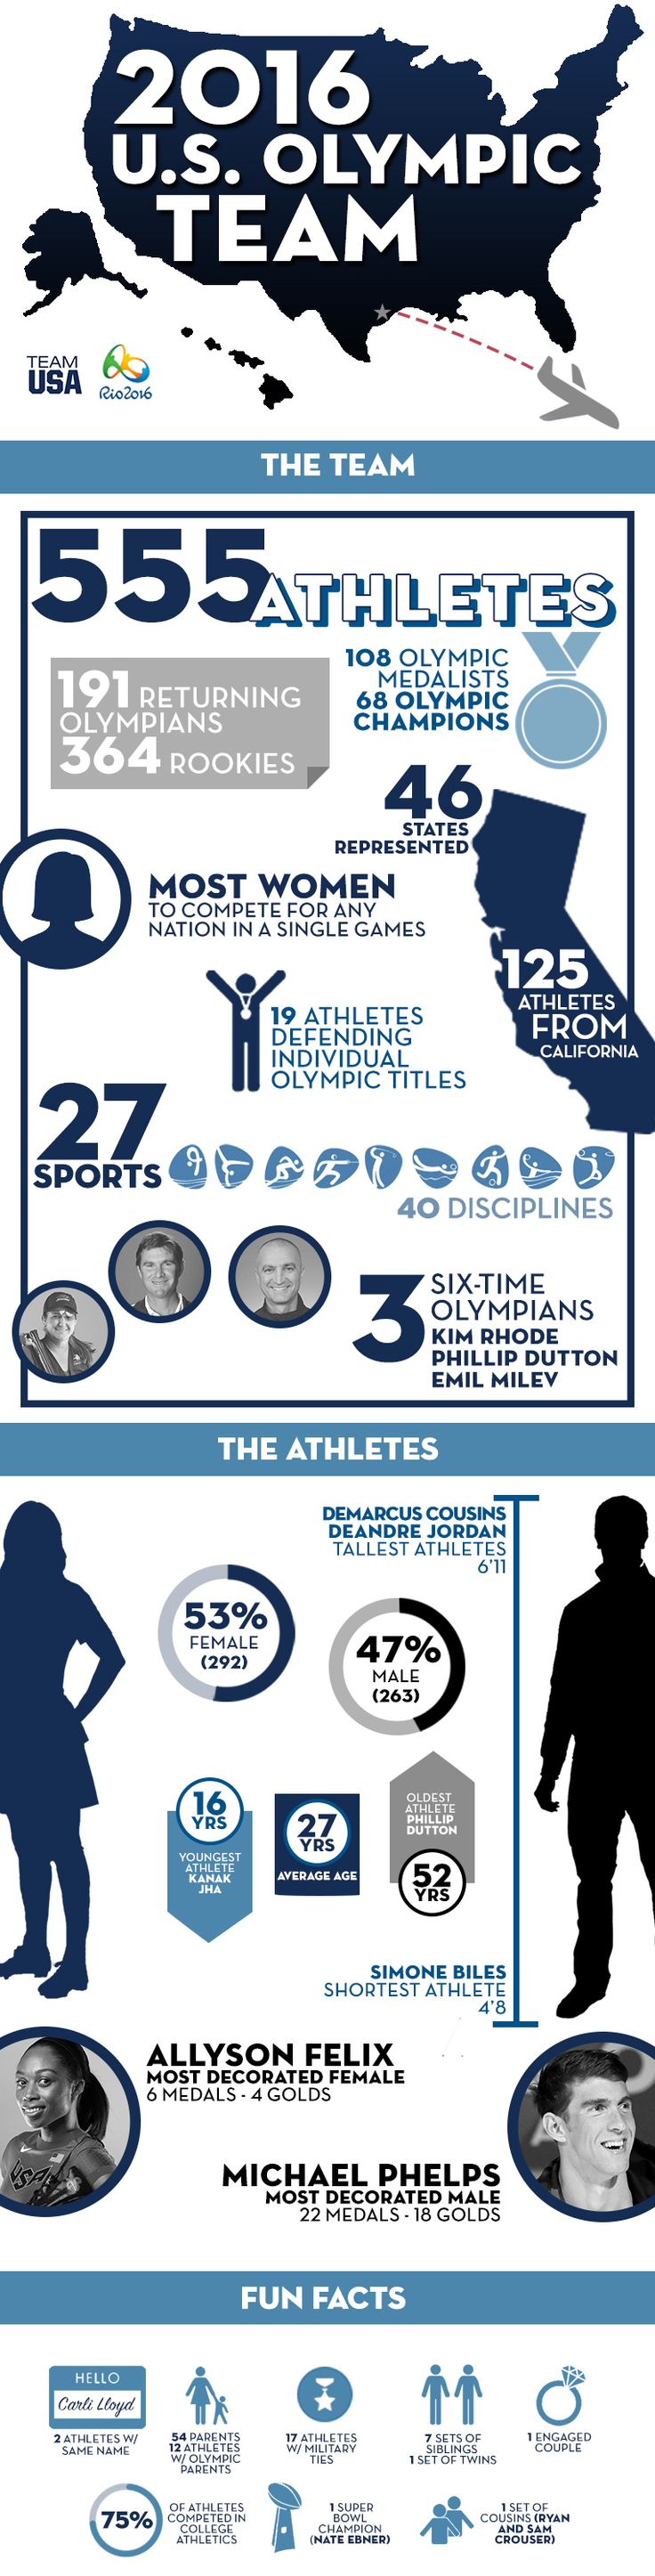 The 555-member team is comprised of 263 men and 292 women, marking the most women who have competed for any nation at a single Games. Go Team USA